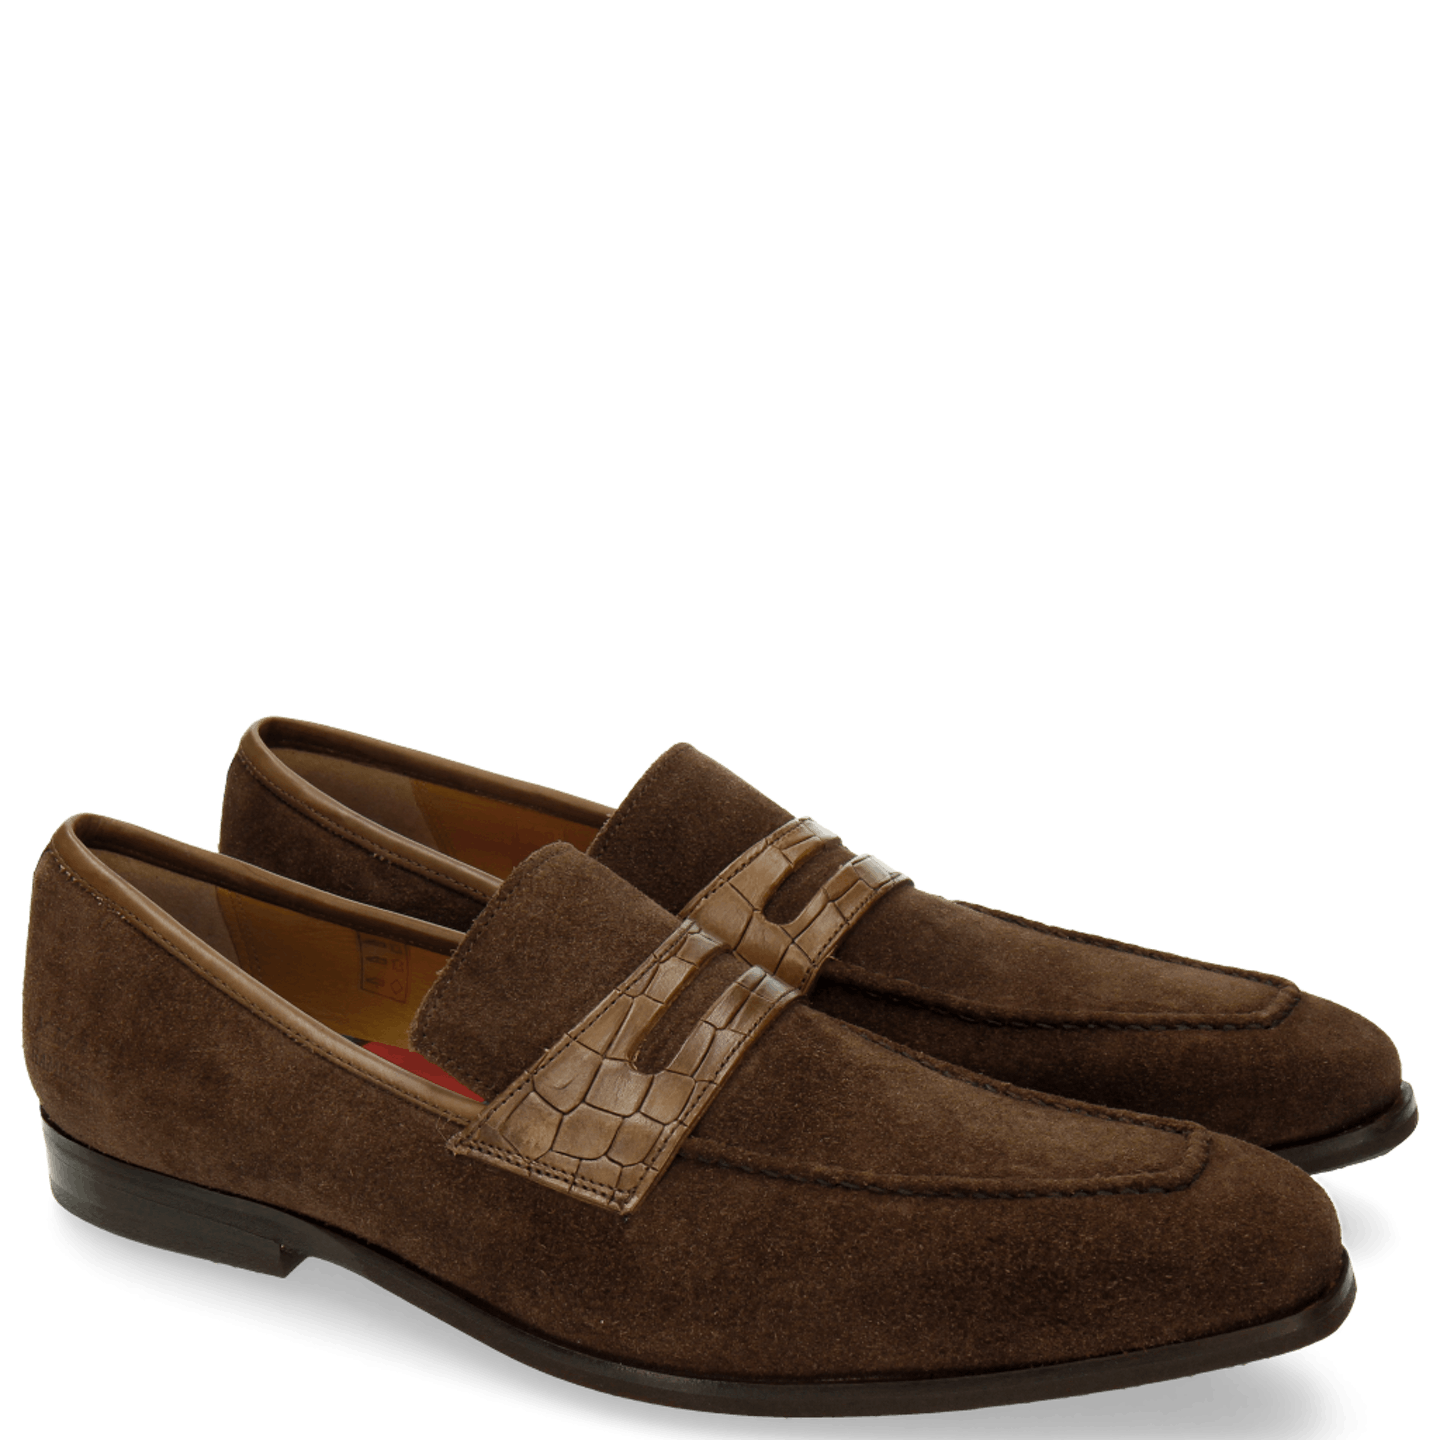 Lance 25 Suede Pattini Crock Dark Brown